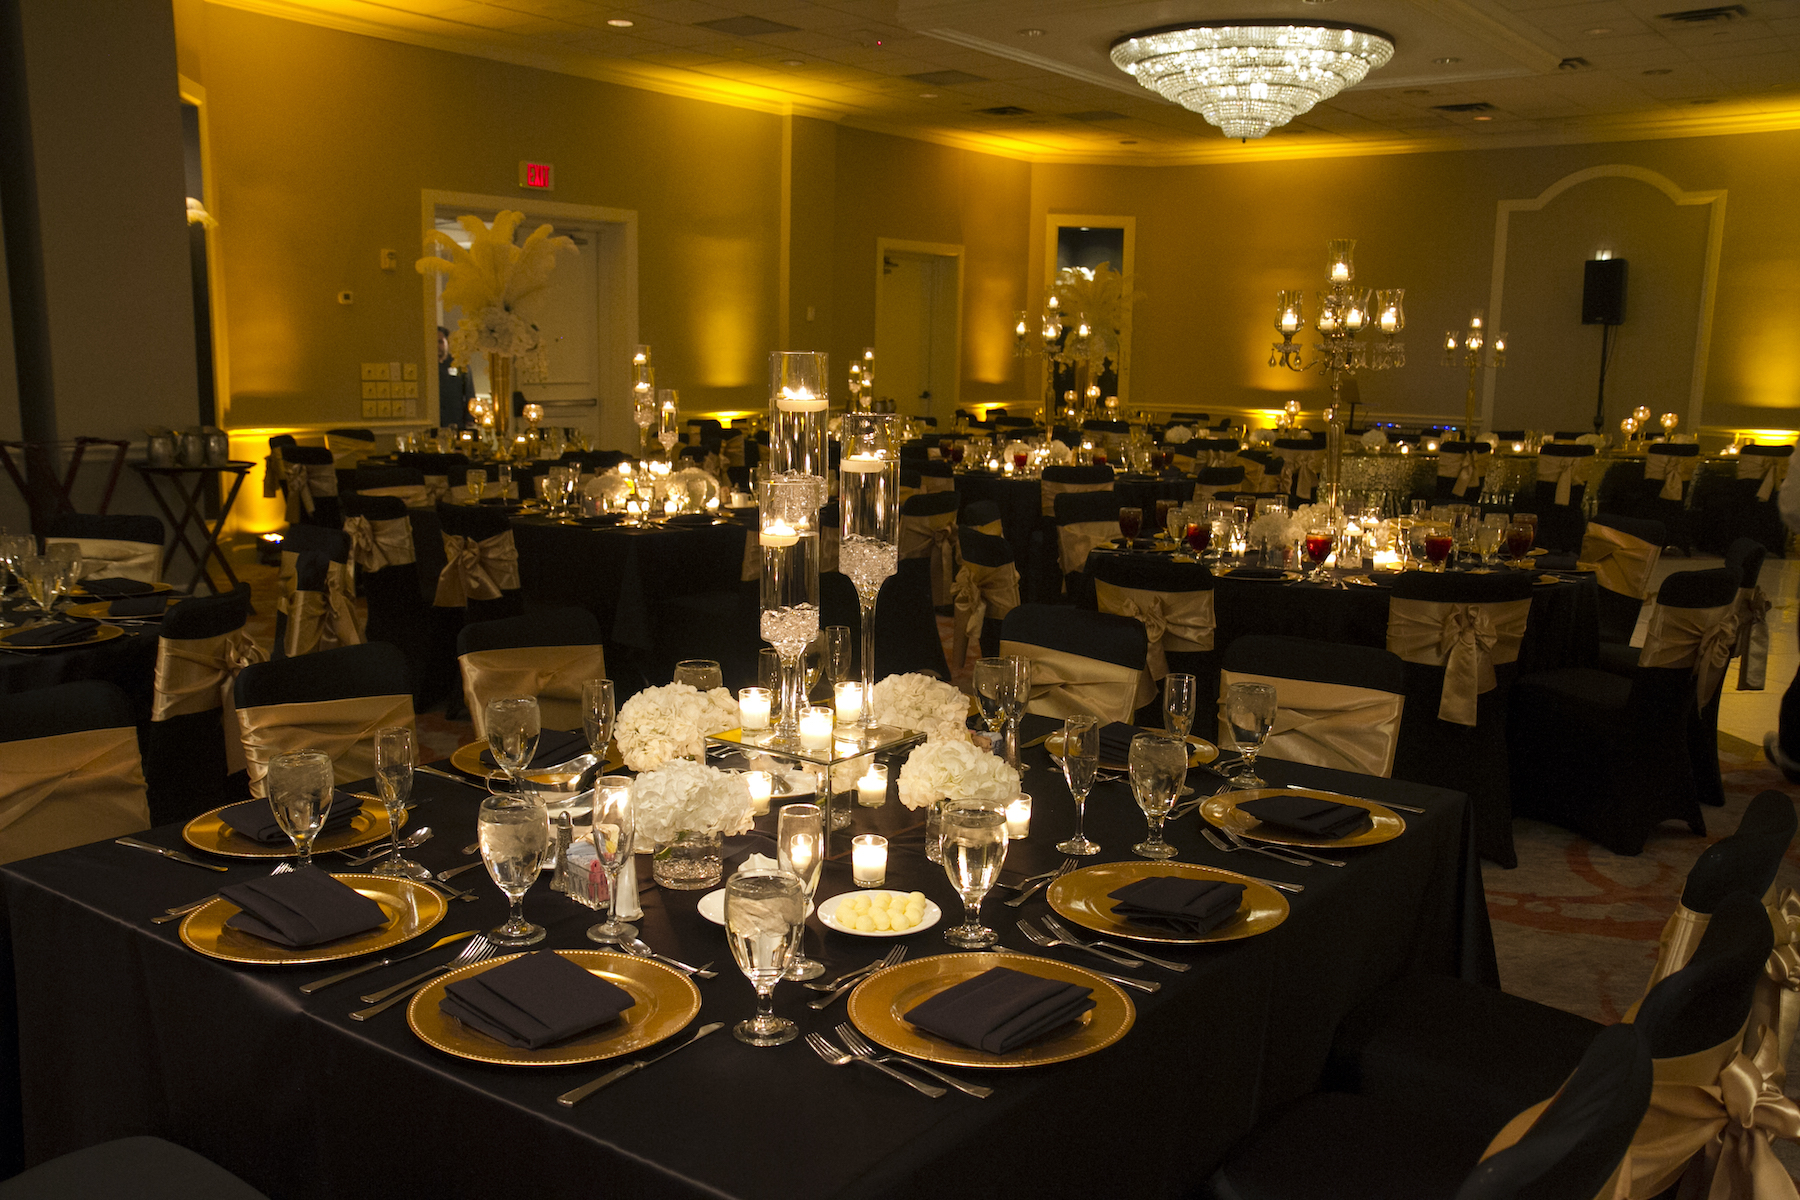 Hotel Wedding Venue - Houston - Historical - The Whitehall Houston